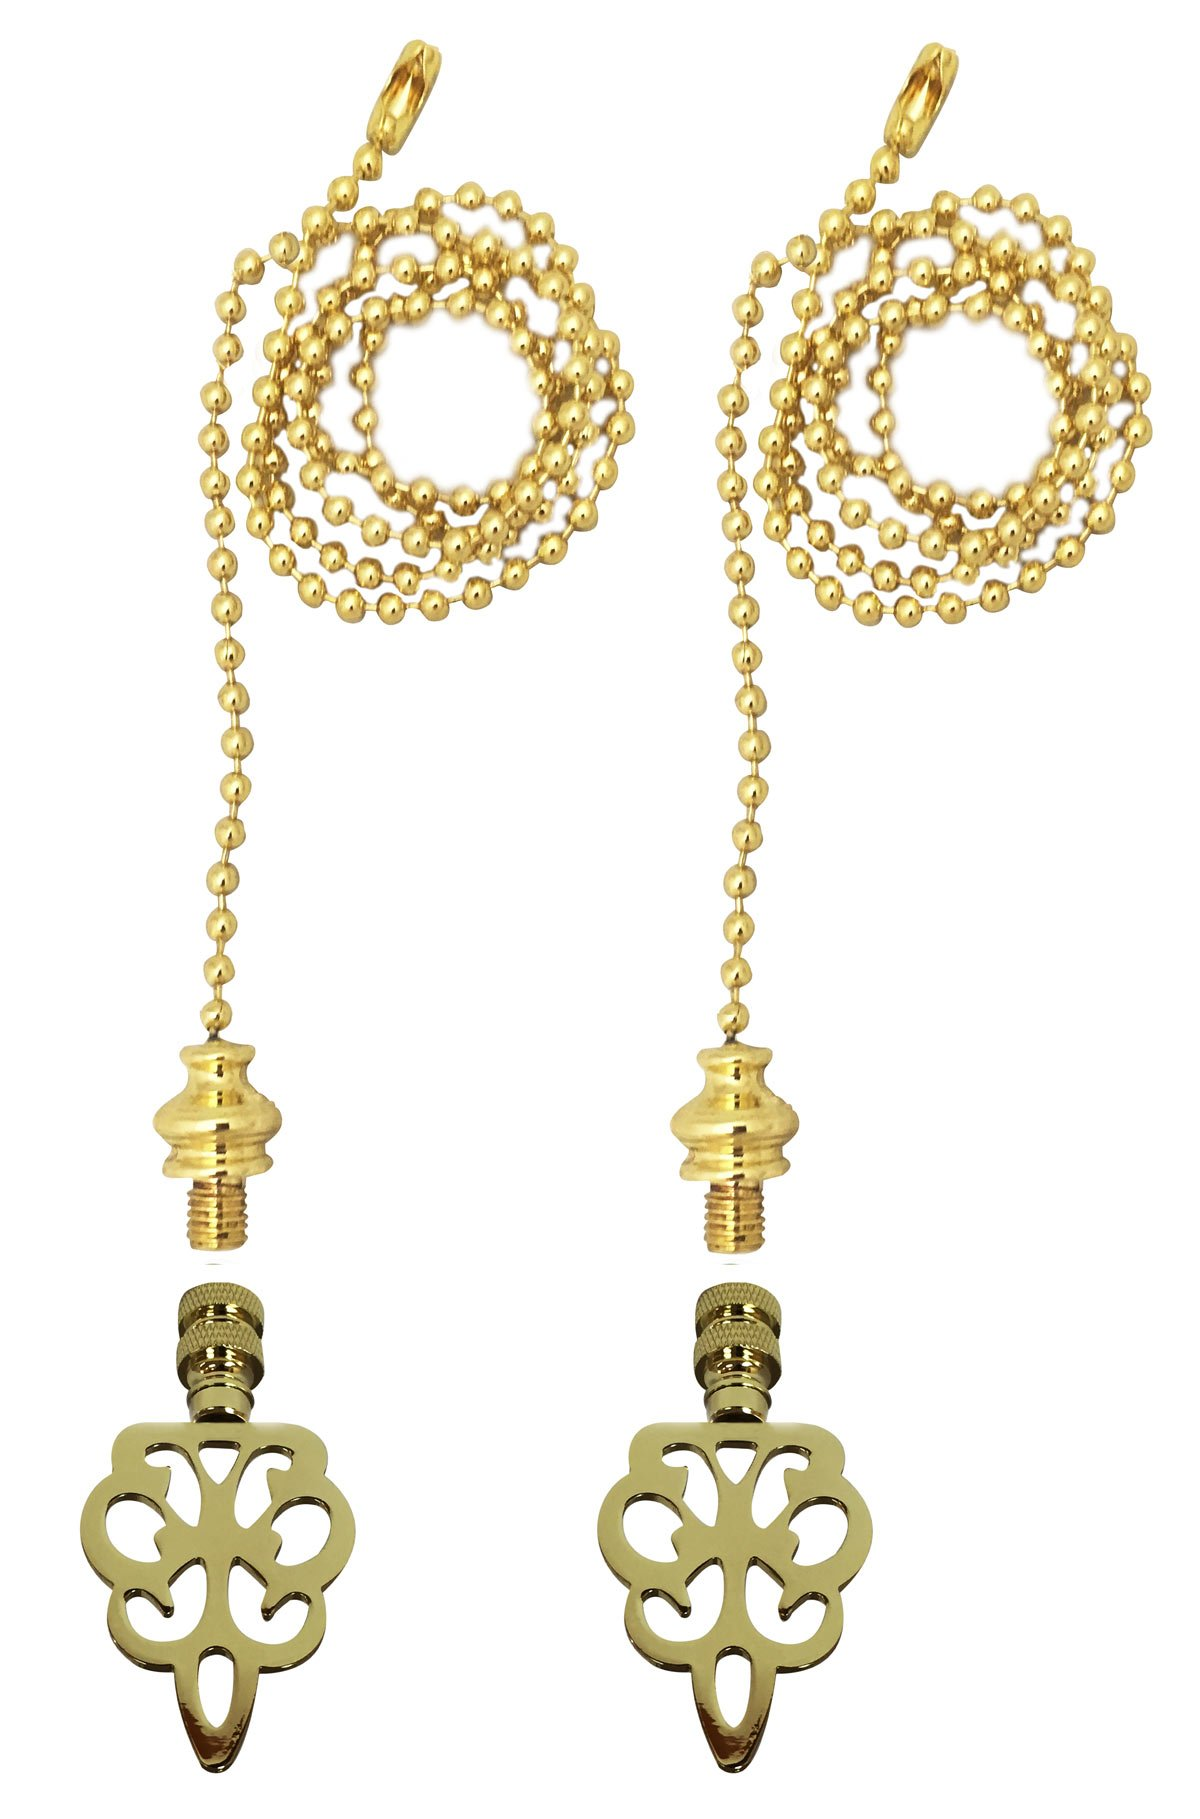 Royal Designs Fan Pull Chain with Open Filigree Motif Finial - Polished Brass - Set of 2